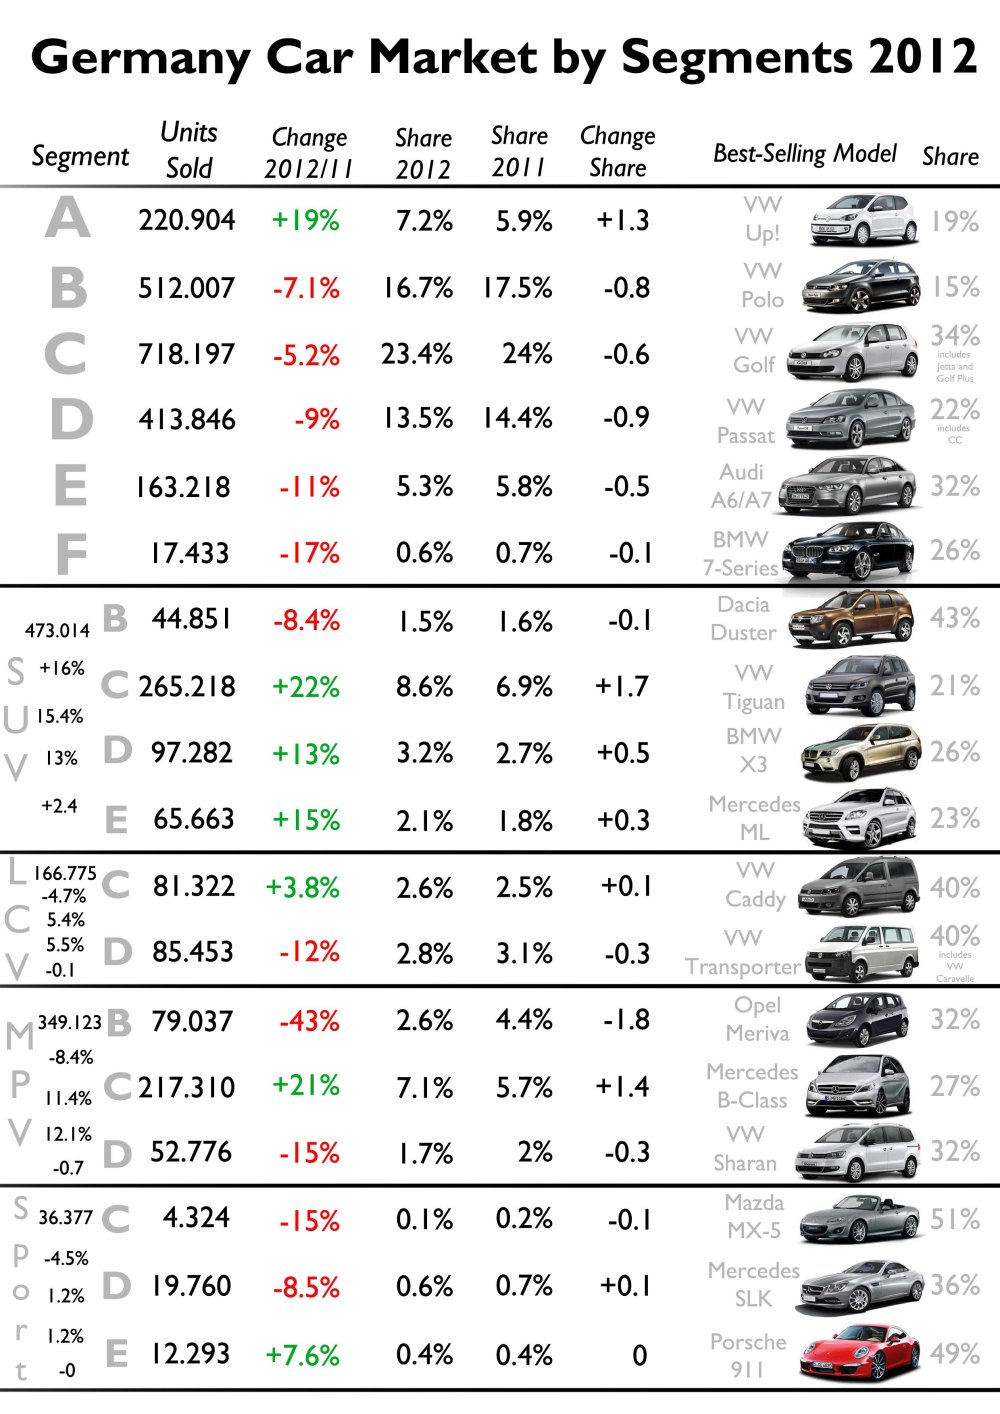 VW is the leader in most of the segments. The Duster and MX-5 are the only foreigners to rank first in their segments. Notice that small SUVs and MPVs decreased their registrations in favor of larger ones. C-SUV is the segment to rise the most its share, while B-MPV is the one with the highest fall. Source: FGW Data Basis, KBA Statistik